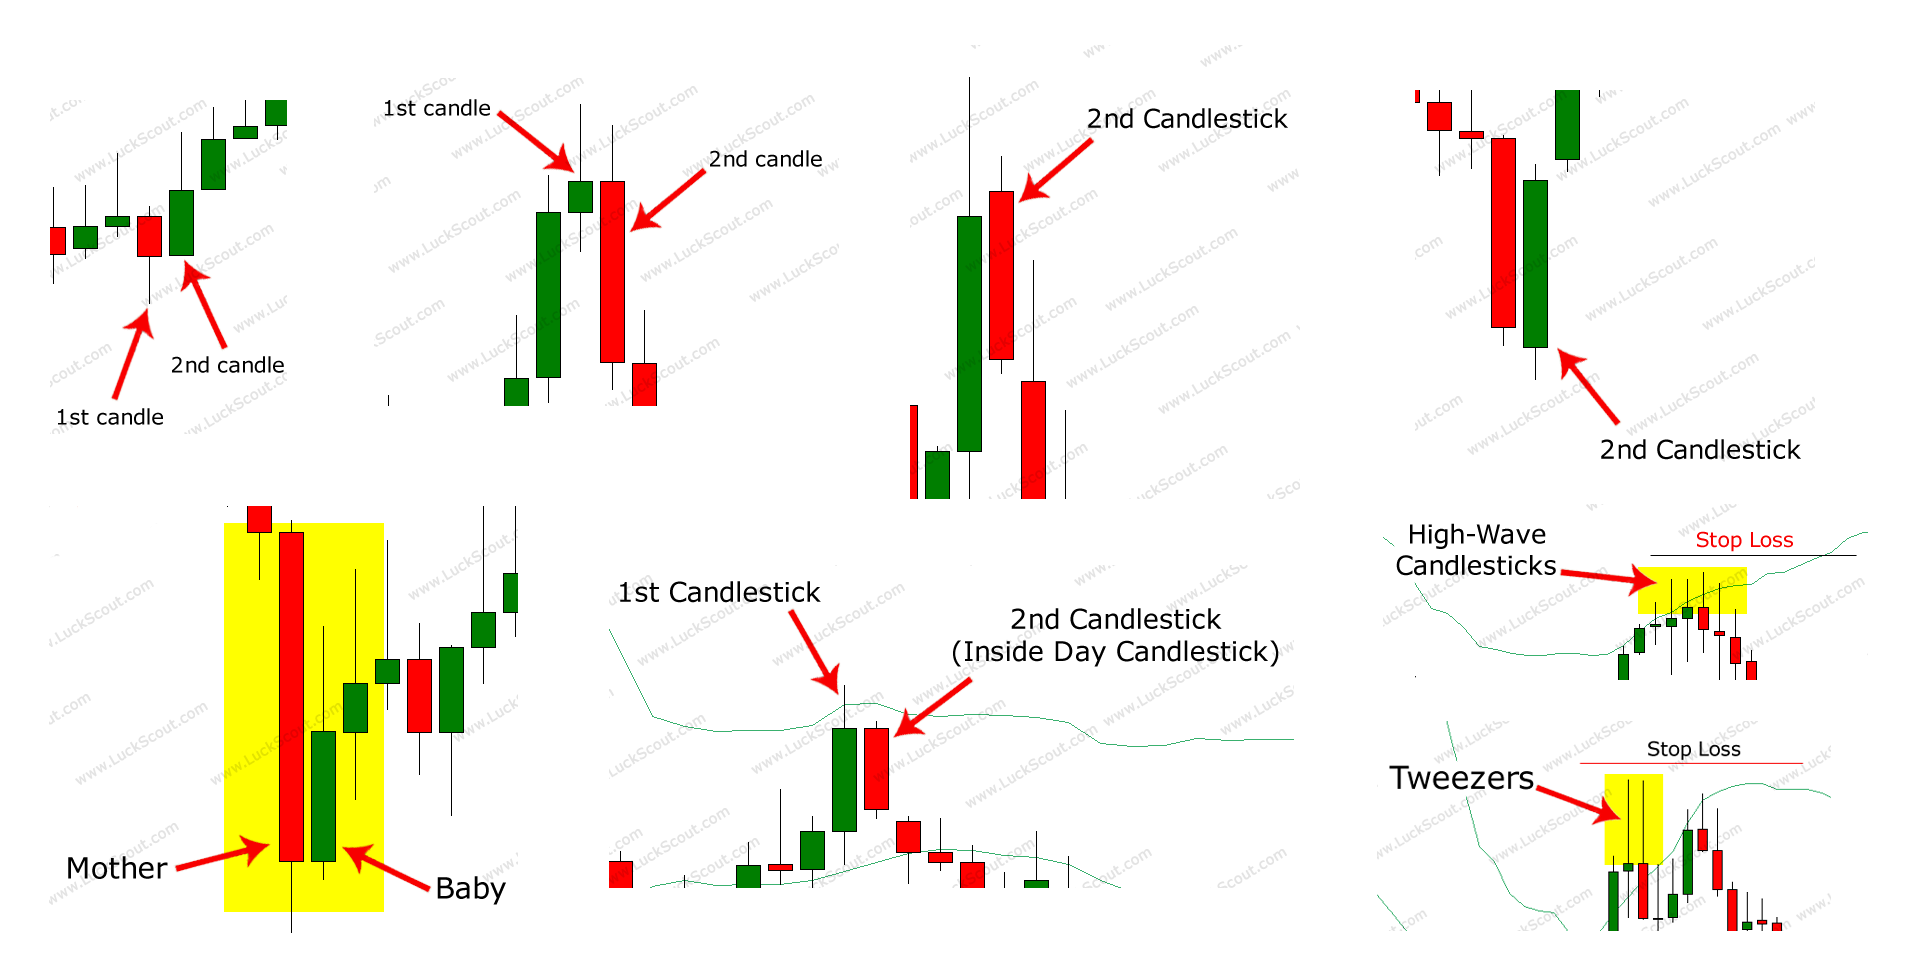 Candlesticks Patterns at a Glance